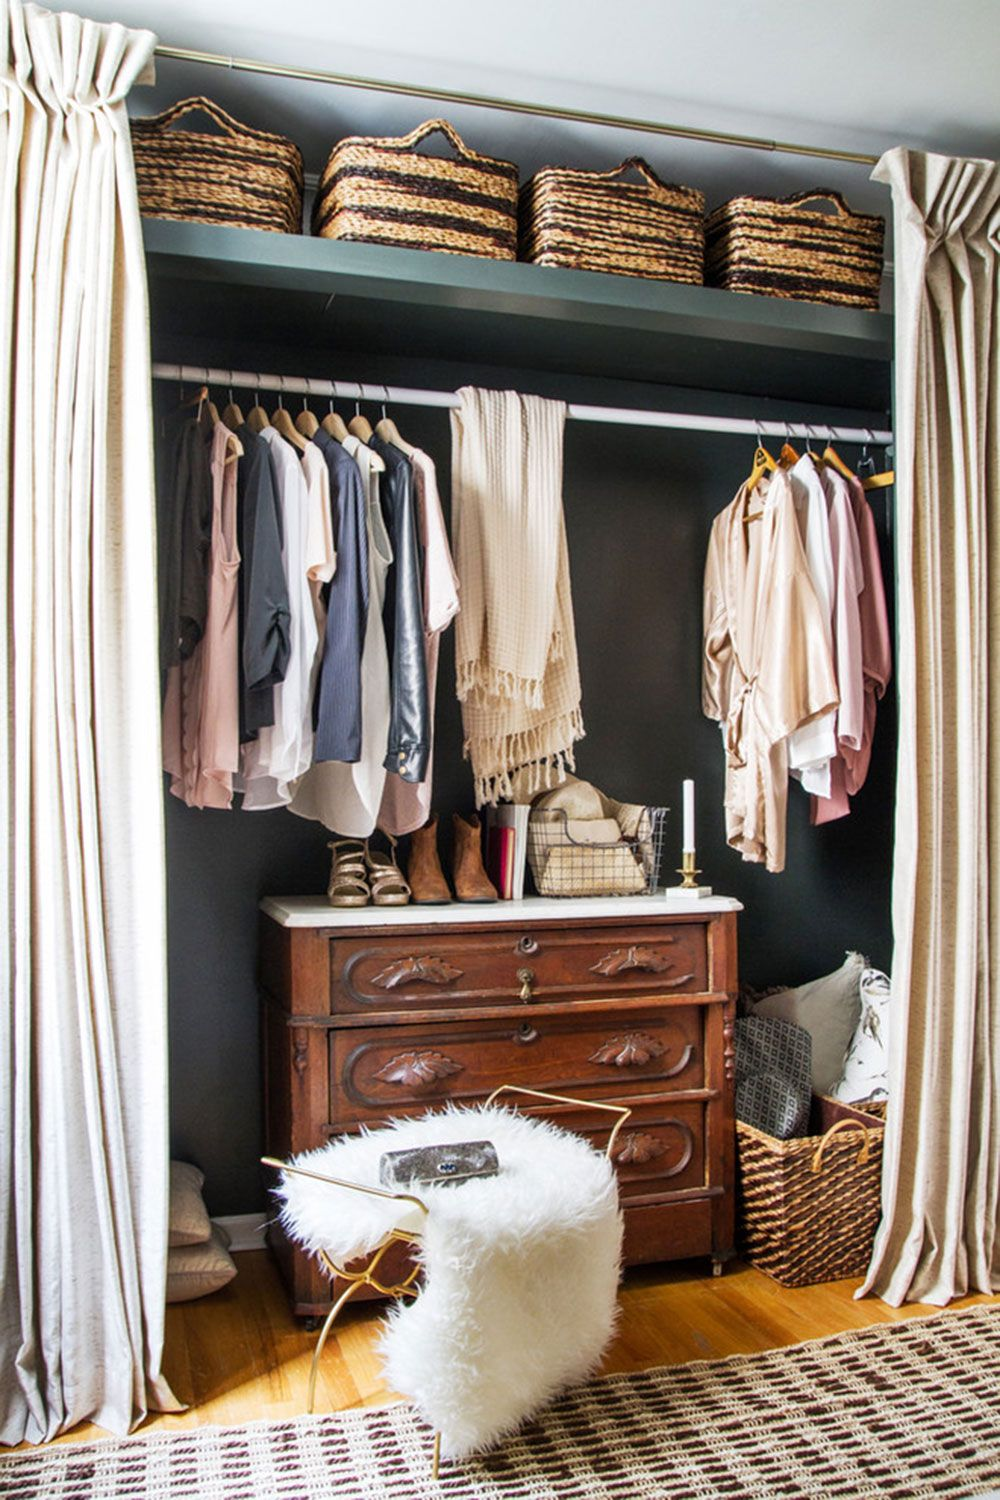 How to cover a closet without doors: Inexpensive options